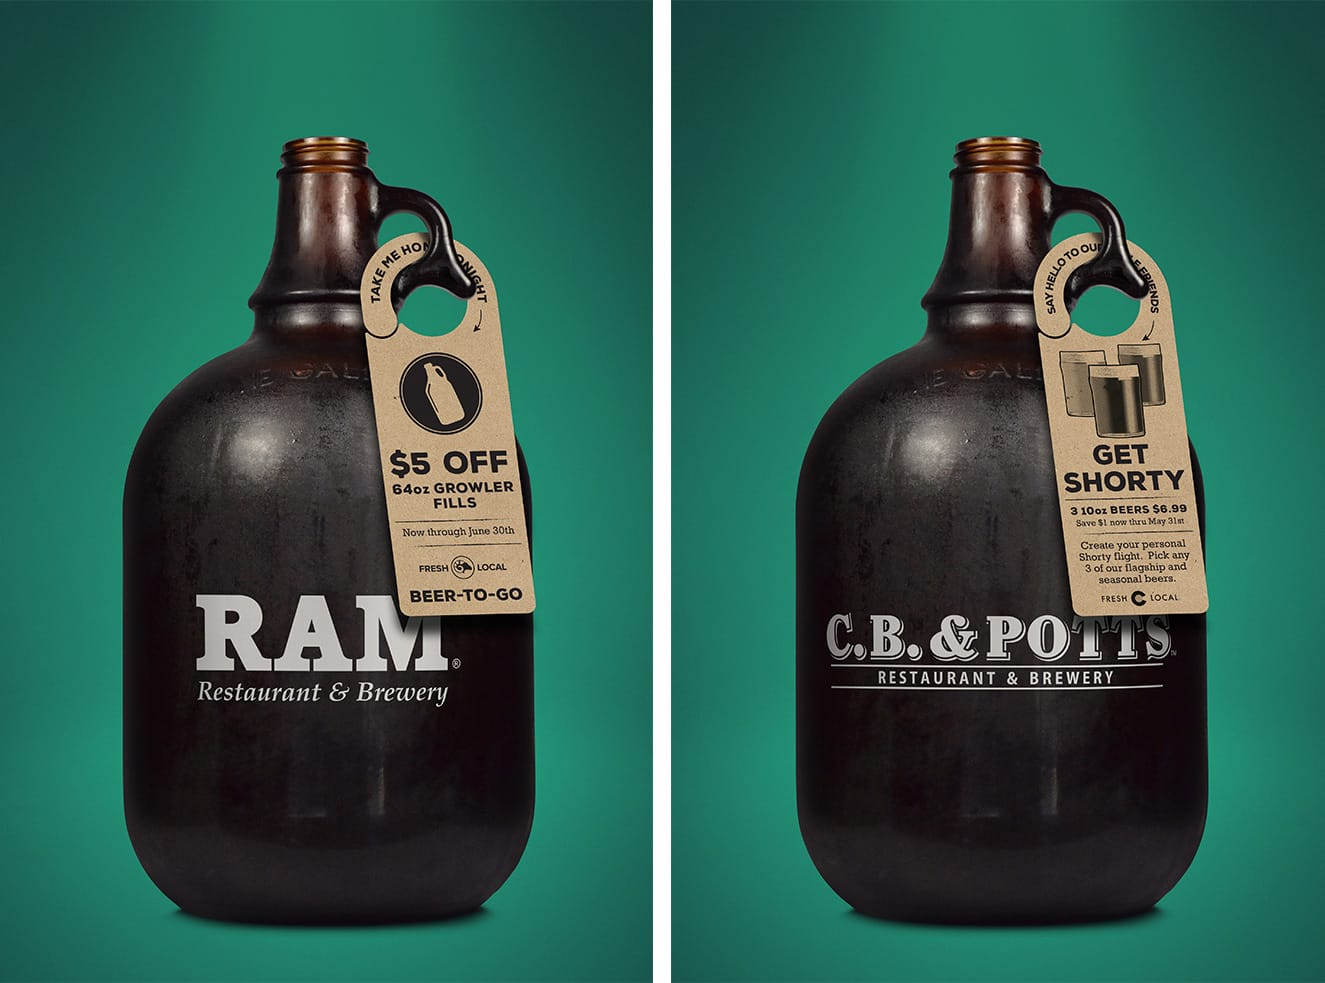 Ram and C.B. & Potts growler tag design